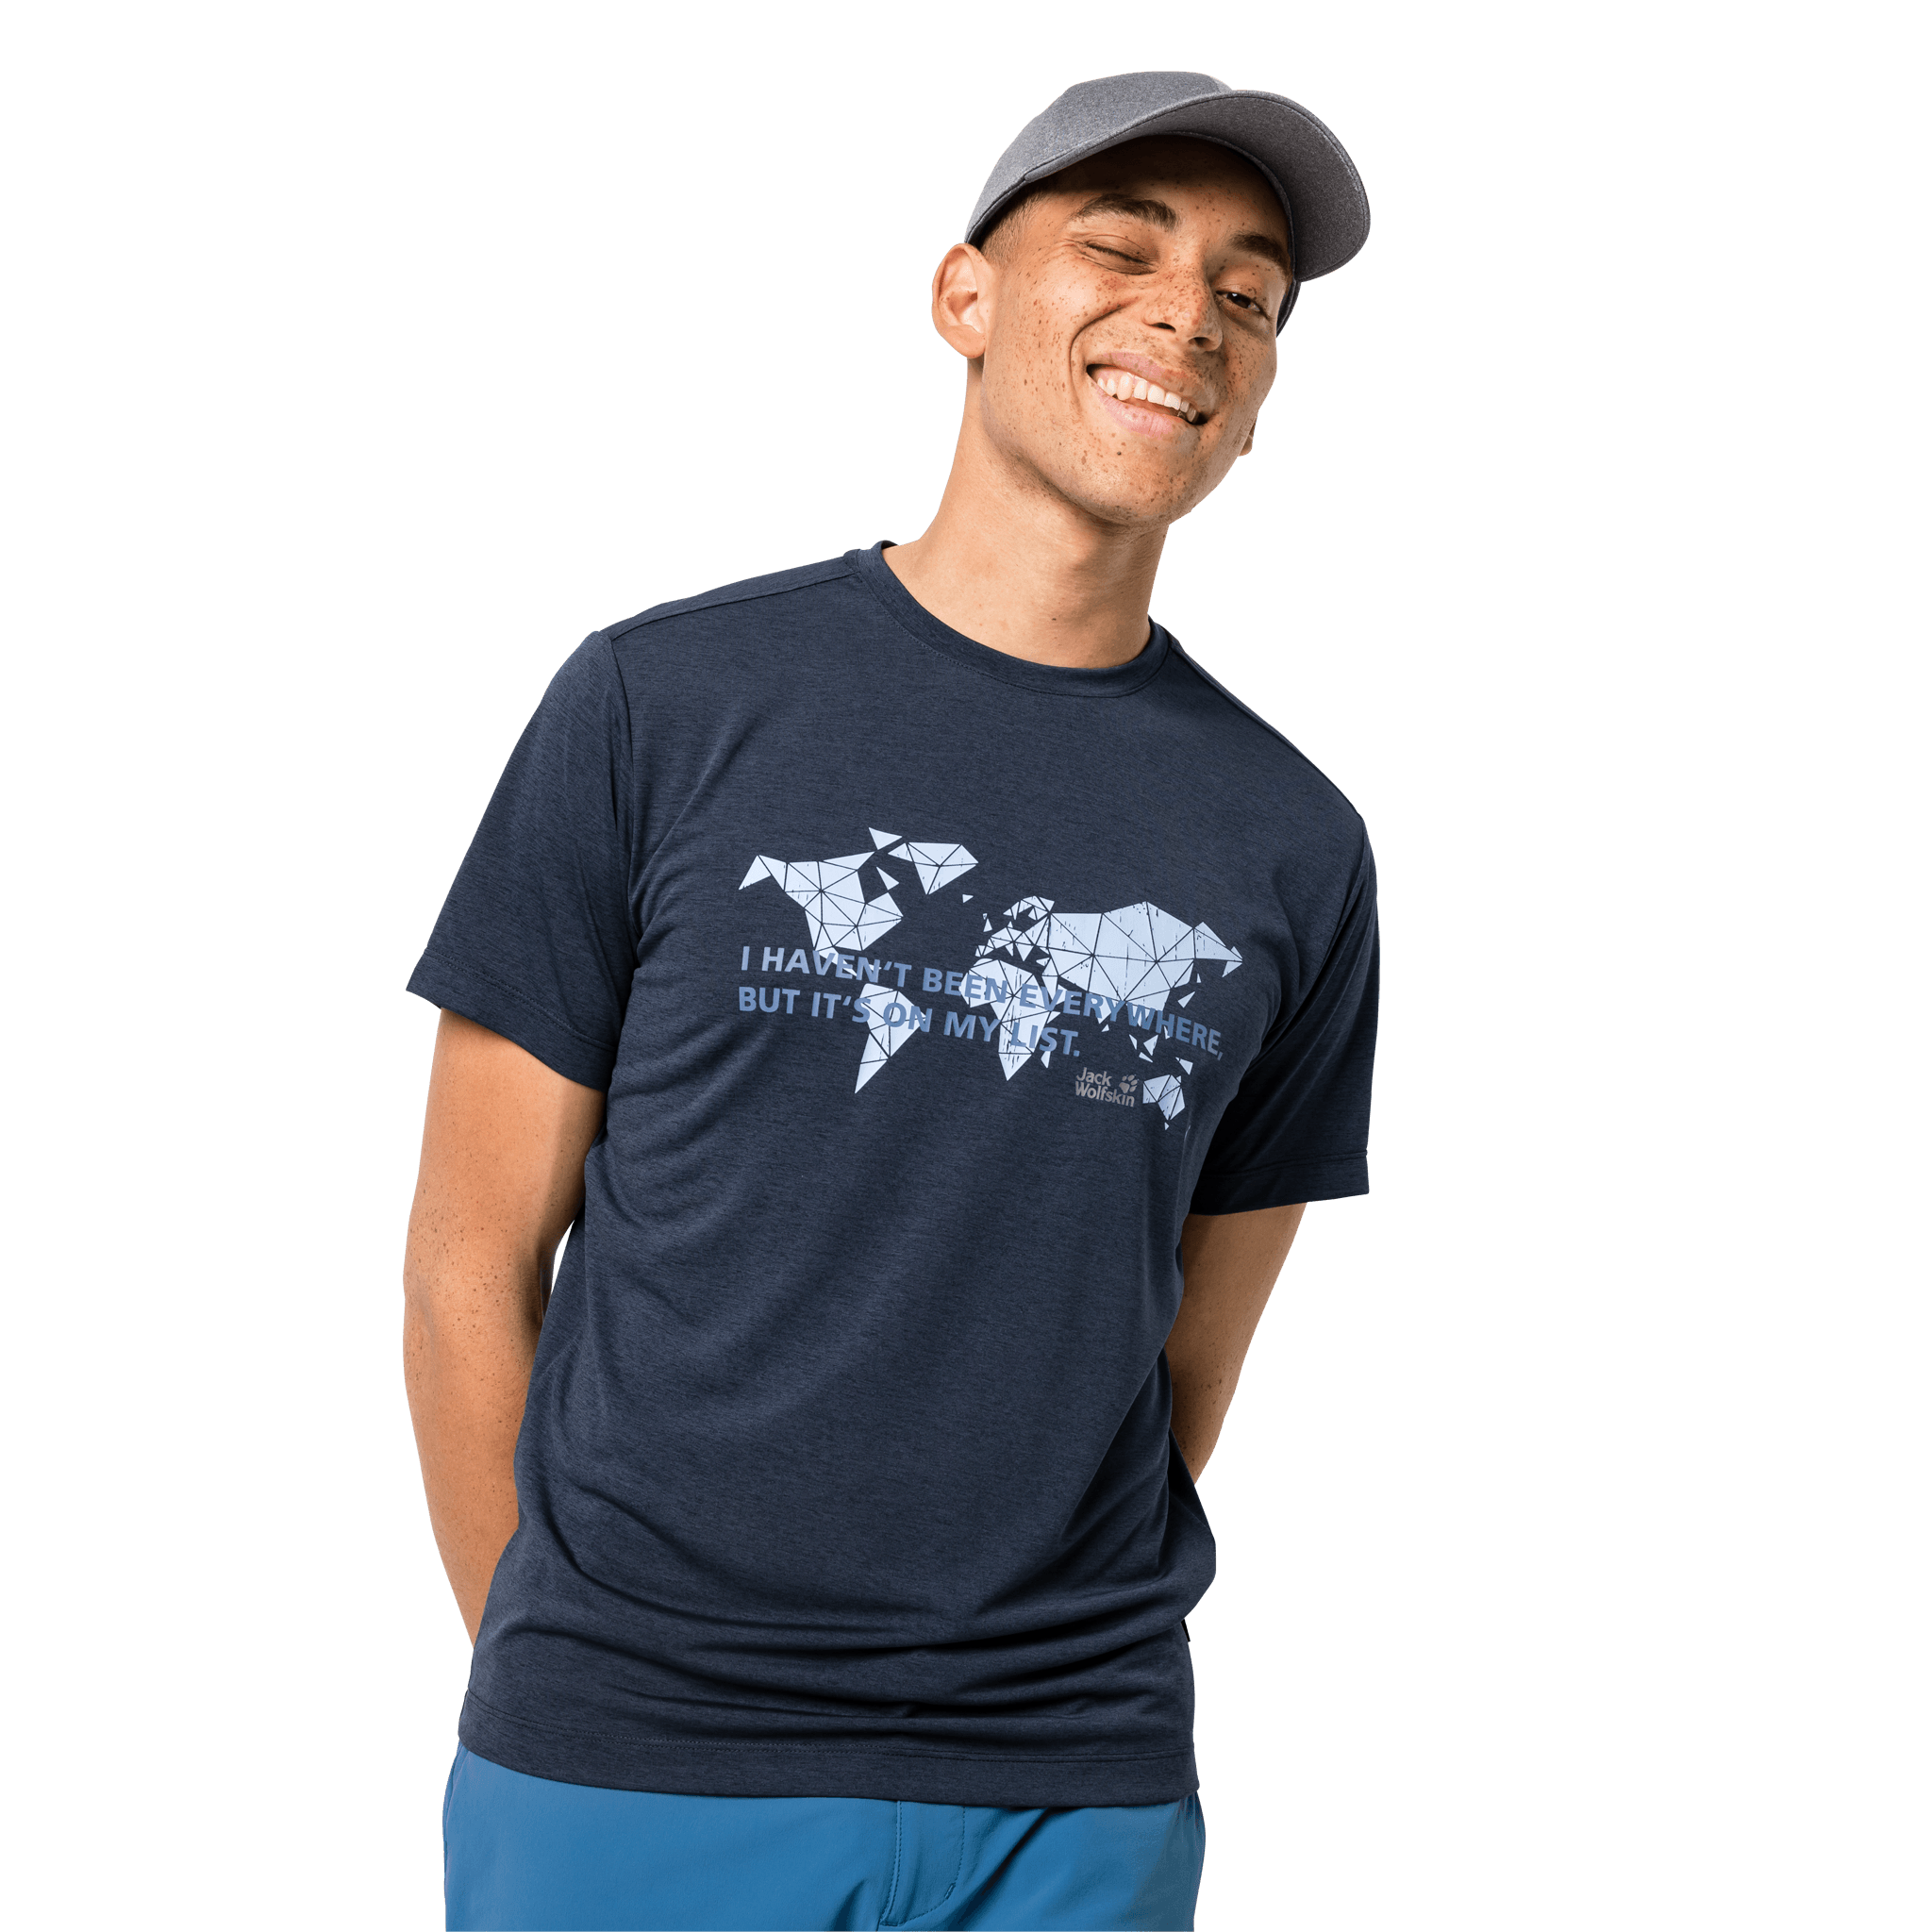 Night Blue Travel T-Shirt Men